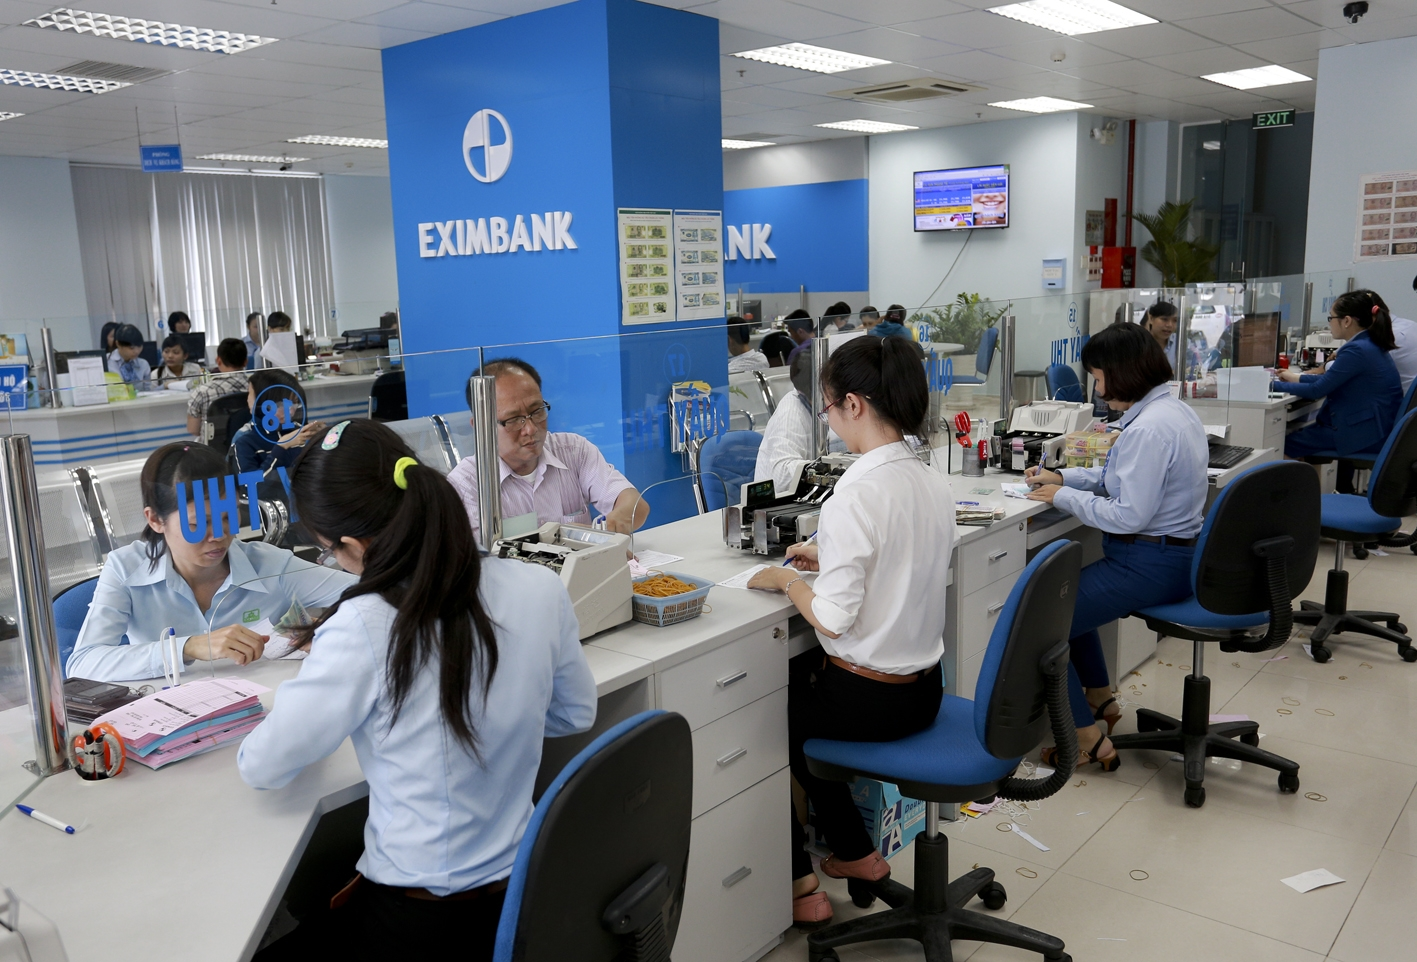 Eximbank's S&P outlook revised to stable